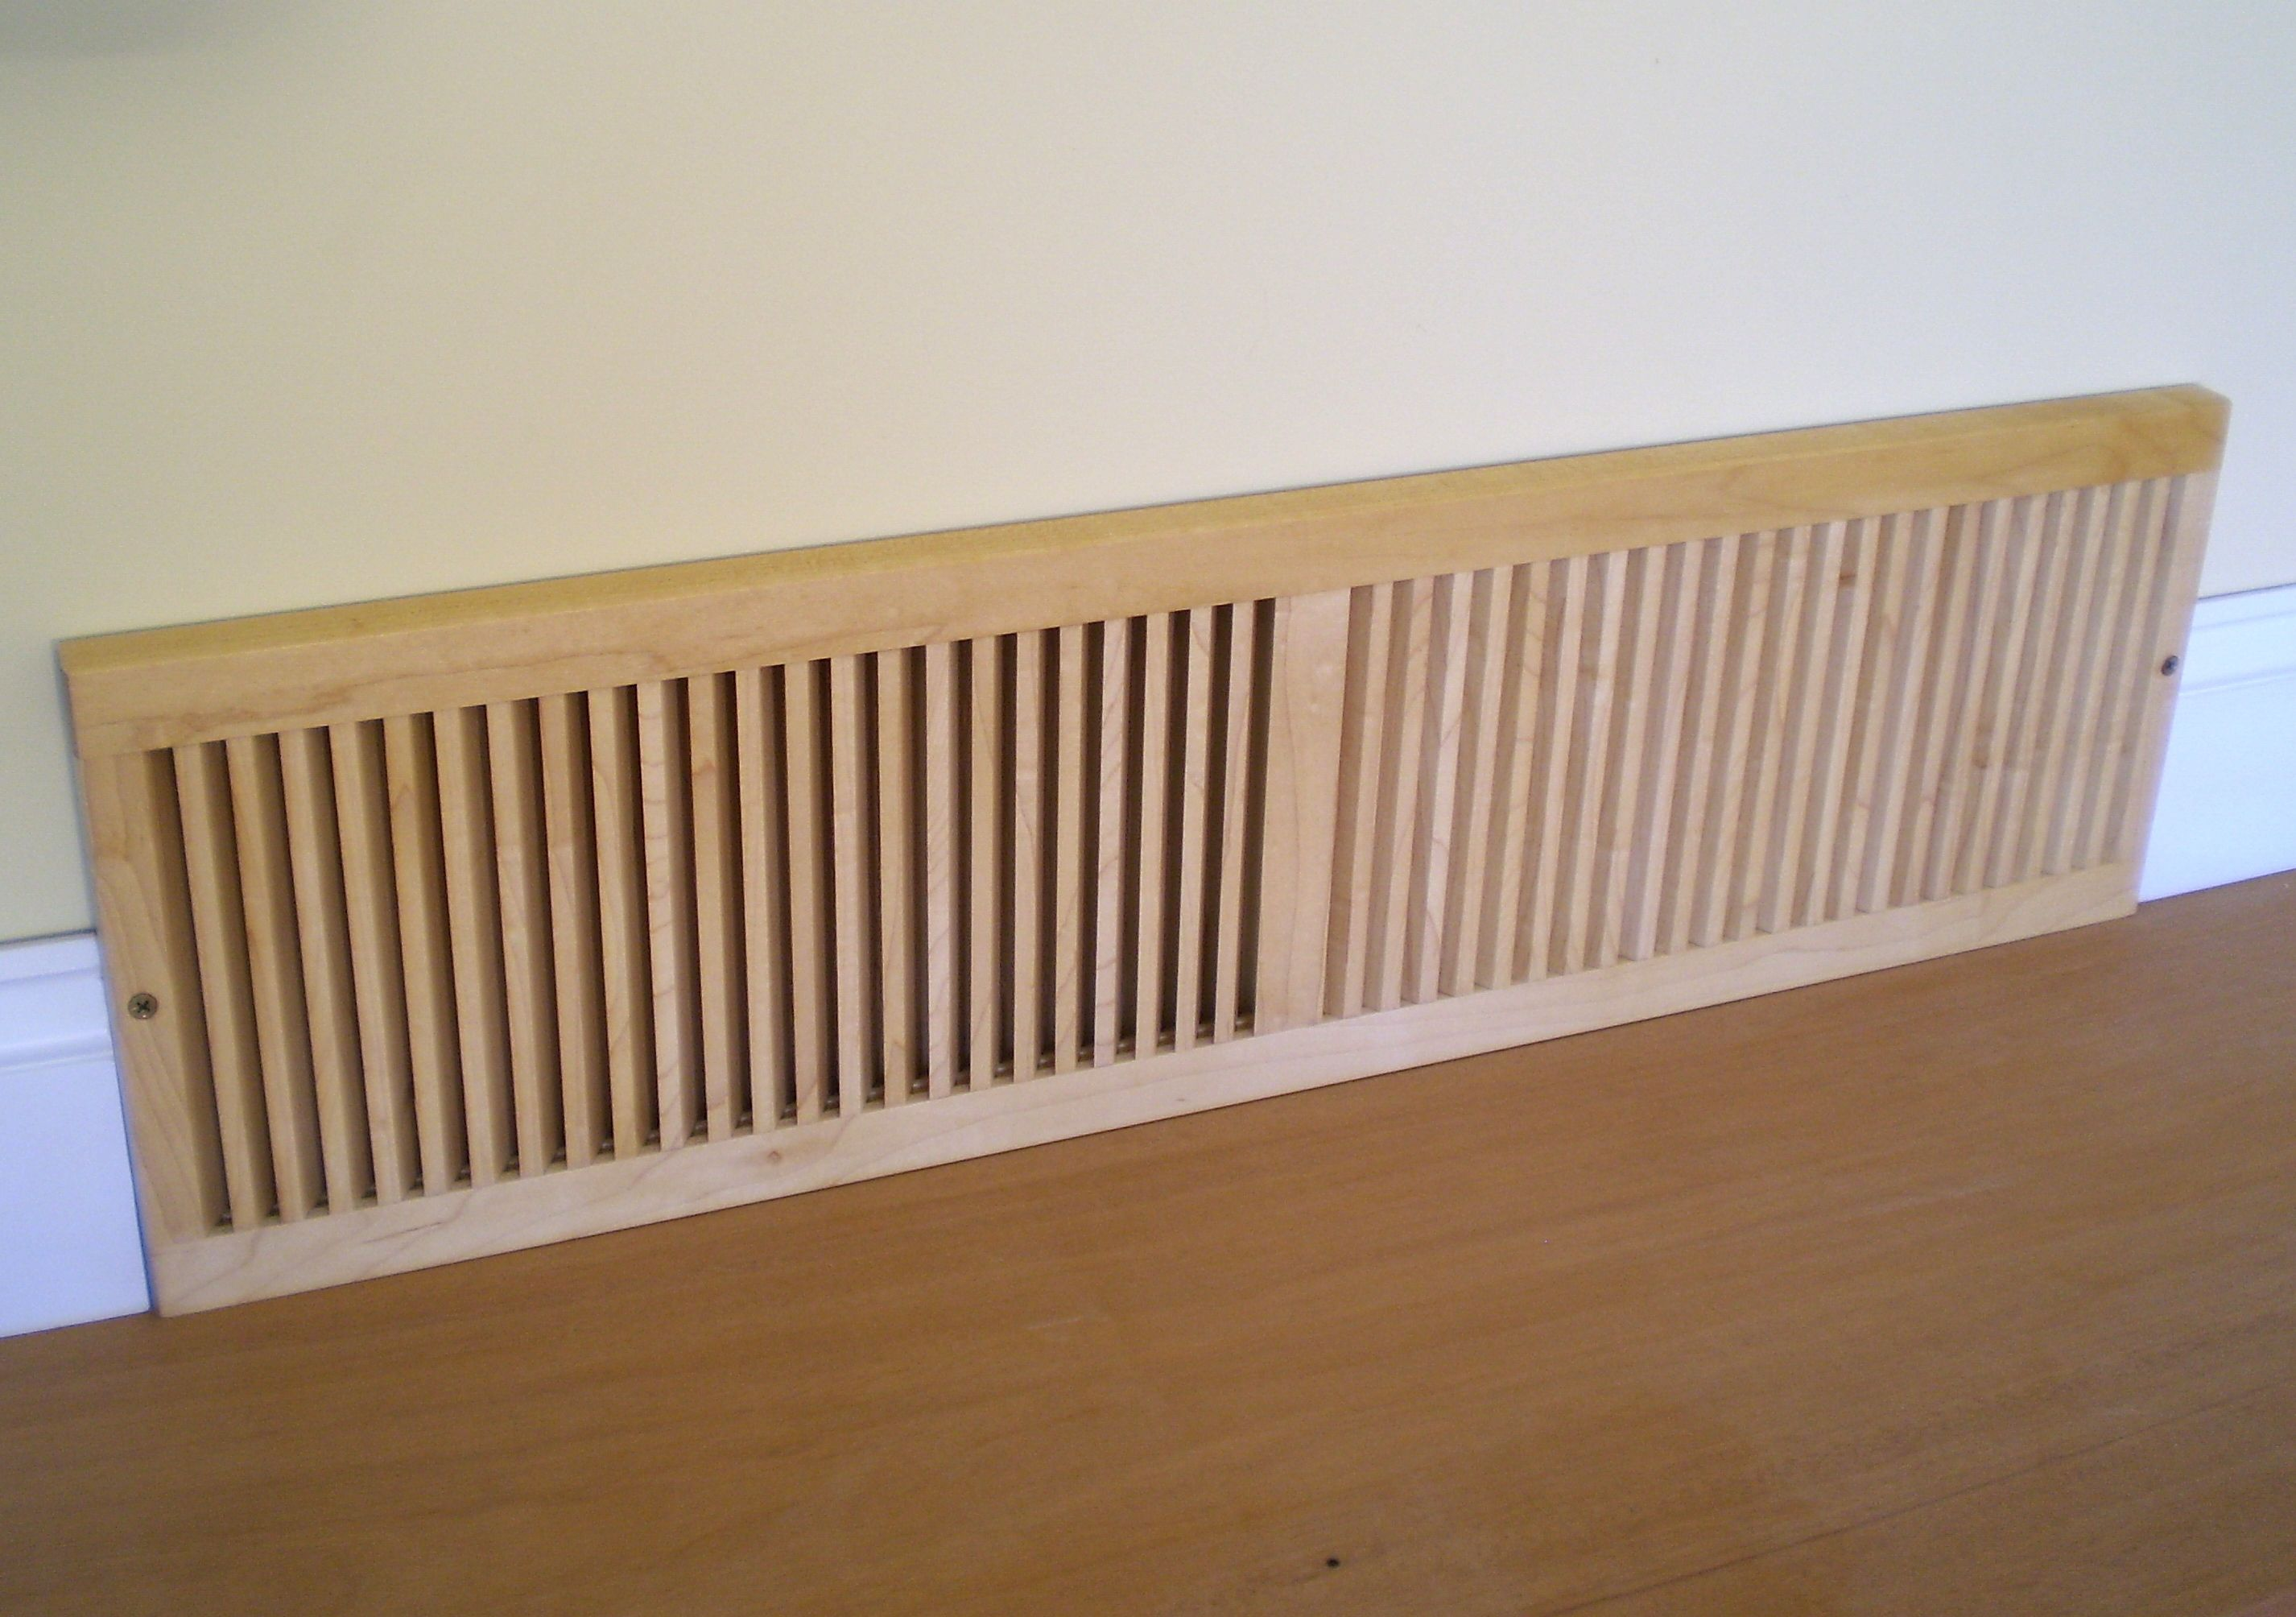 Louvered wood vent covers wooden finishings cold air for Www the house com returns